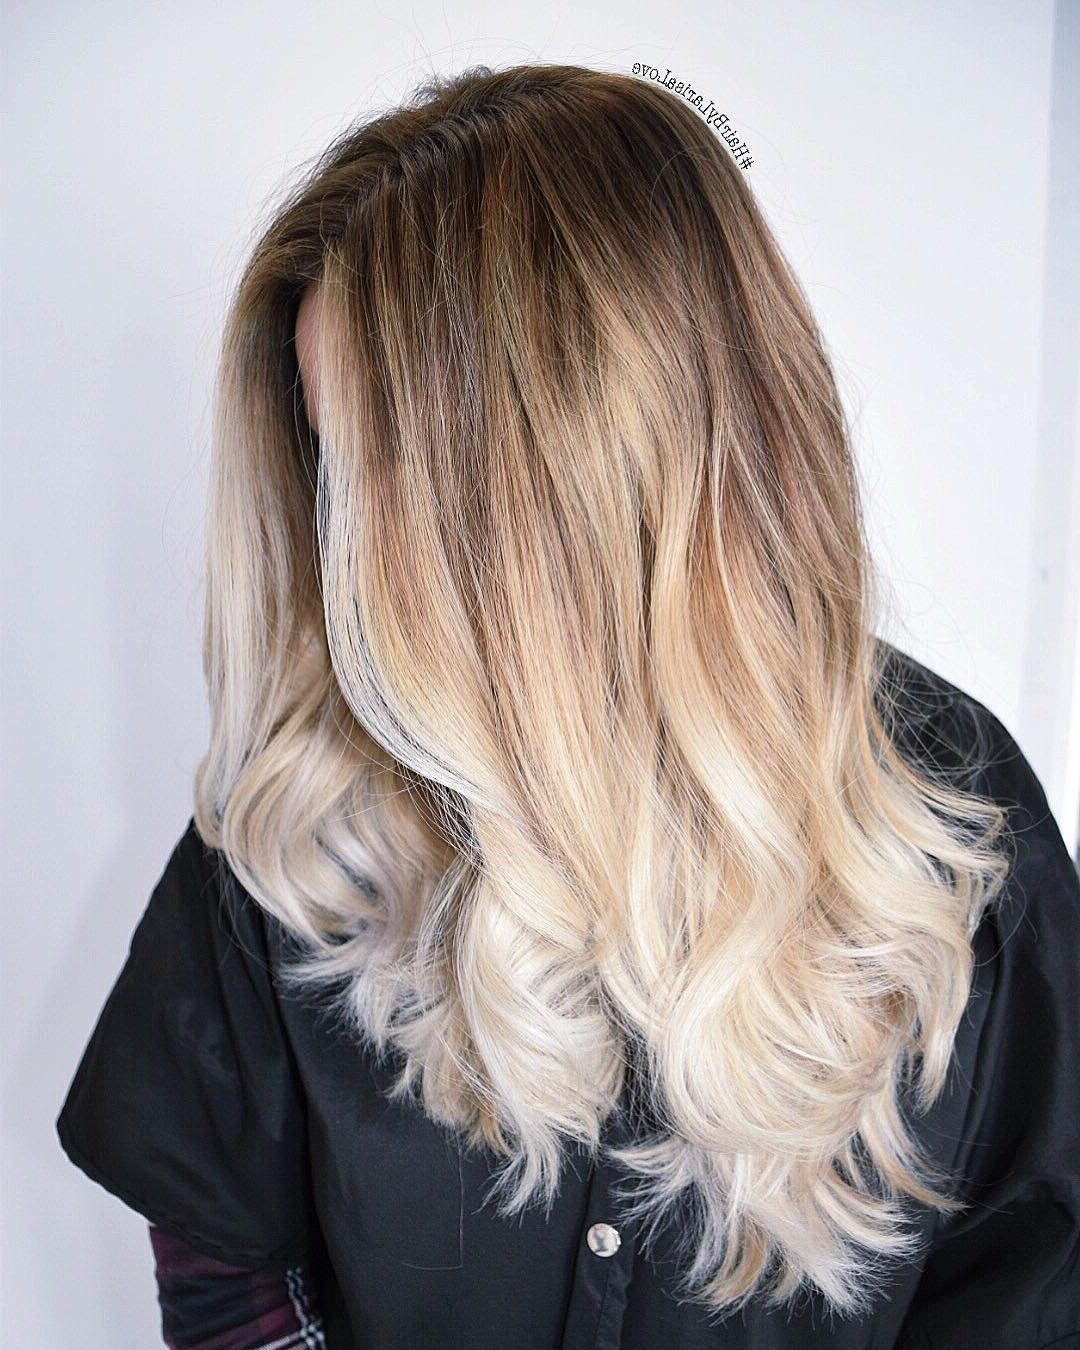 Widely Used Short Spiral Waves Hairstyles For Brides Pertaining To 20 Perfect Ways To Get Beach Waves In Your Hair {2019 Update} (View 19 of 20)